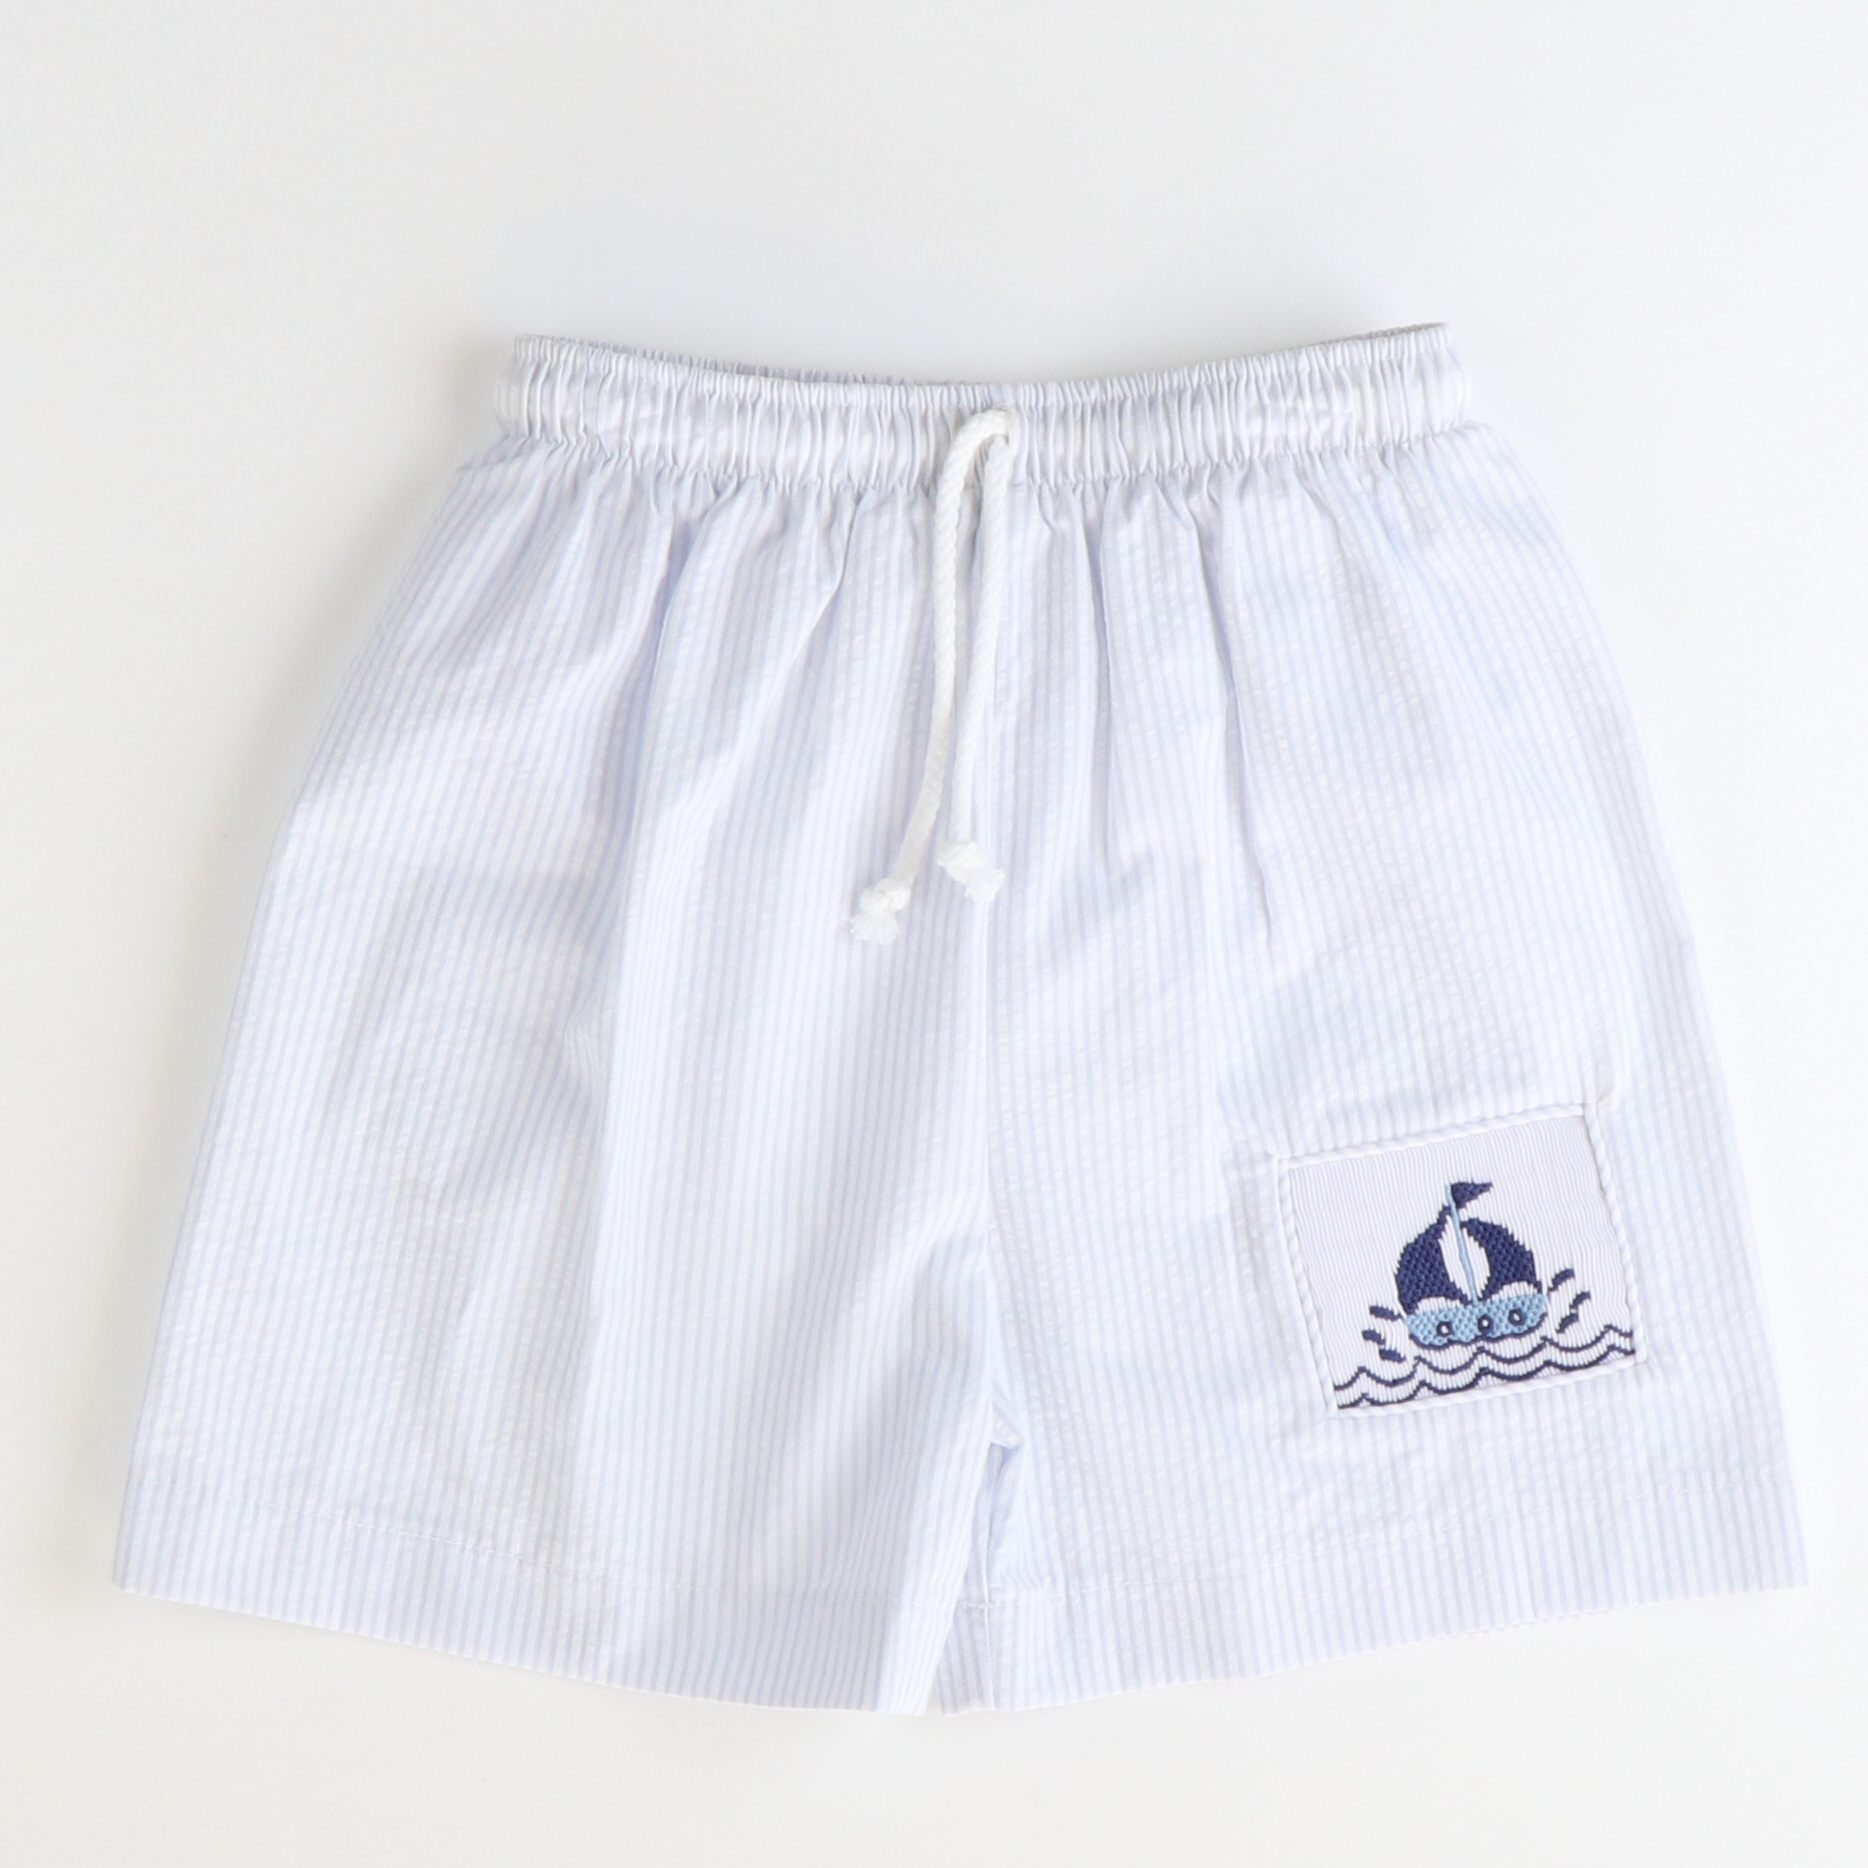 Smocked Sailboats Swim Trunks - Light Blue Stripe Seersucker